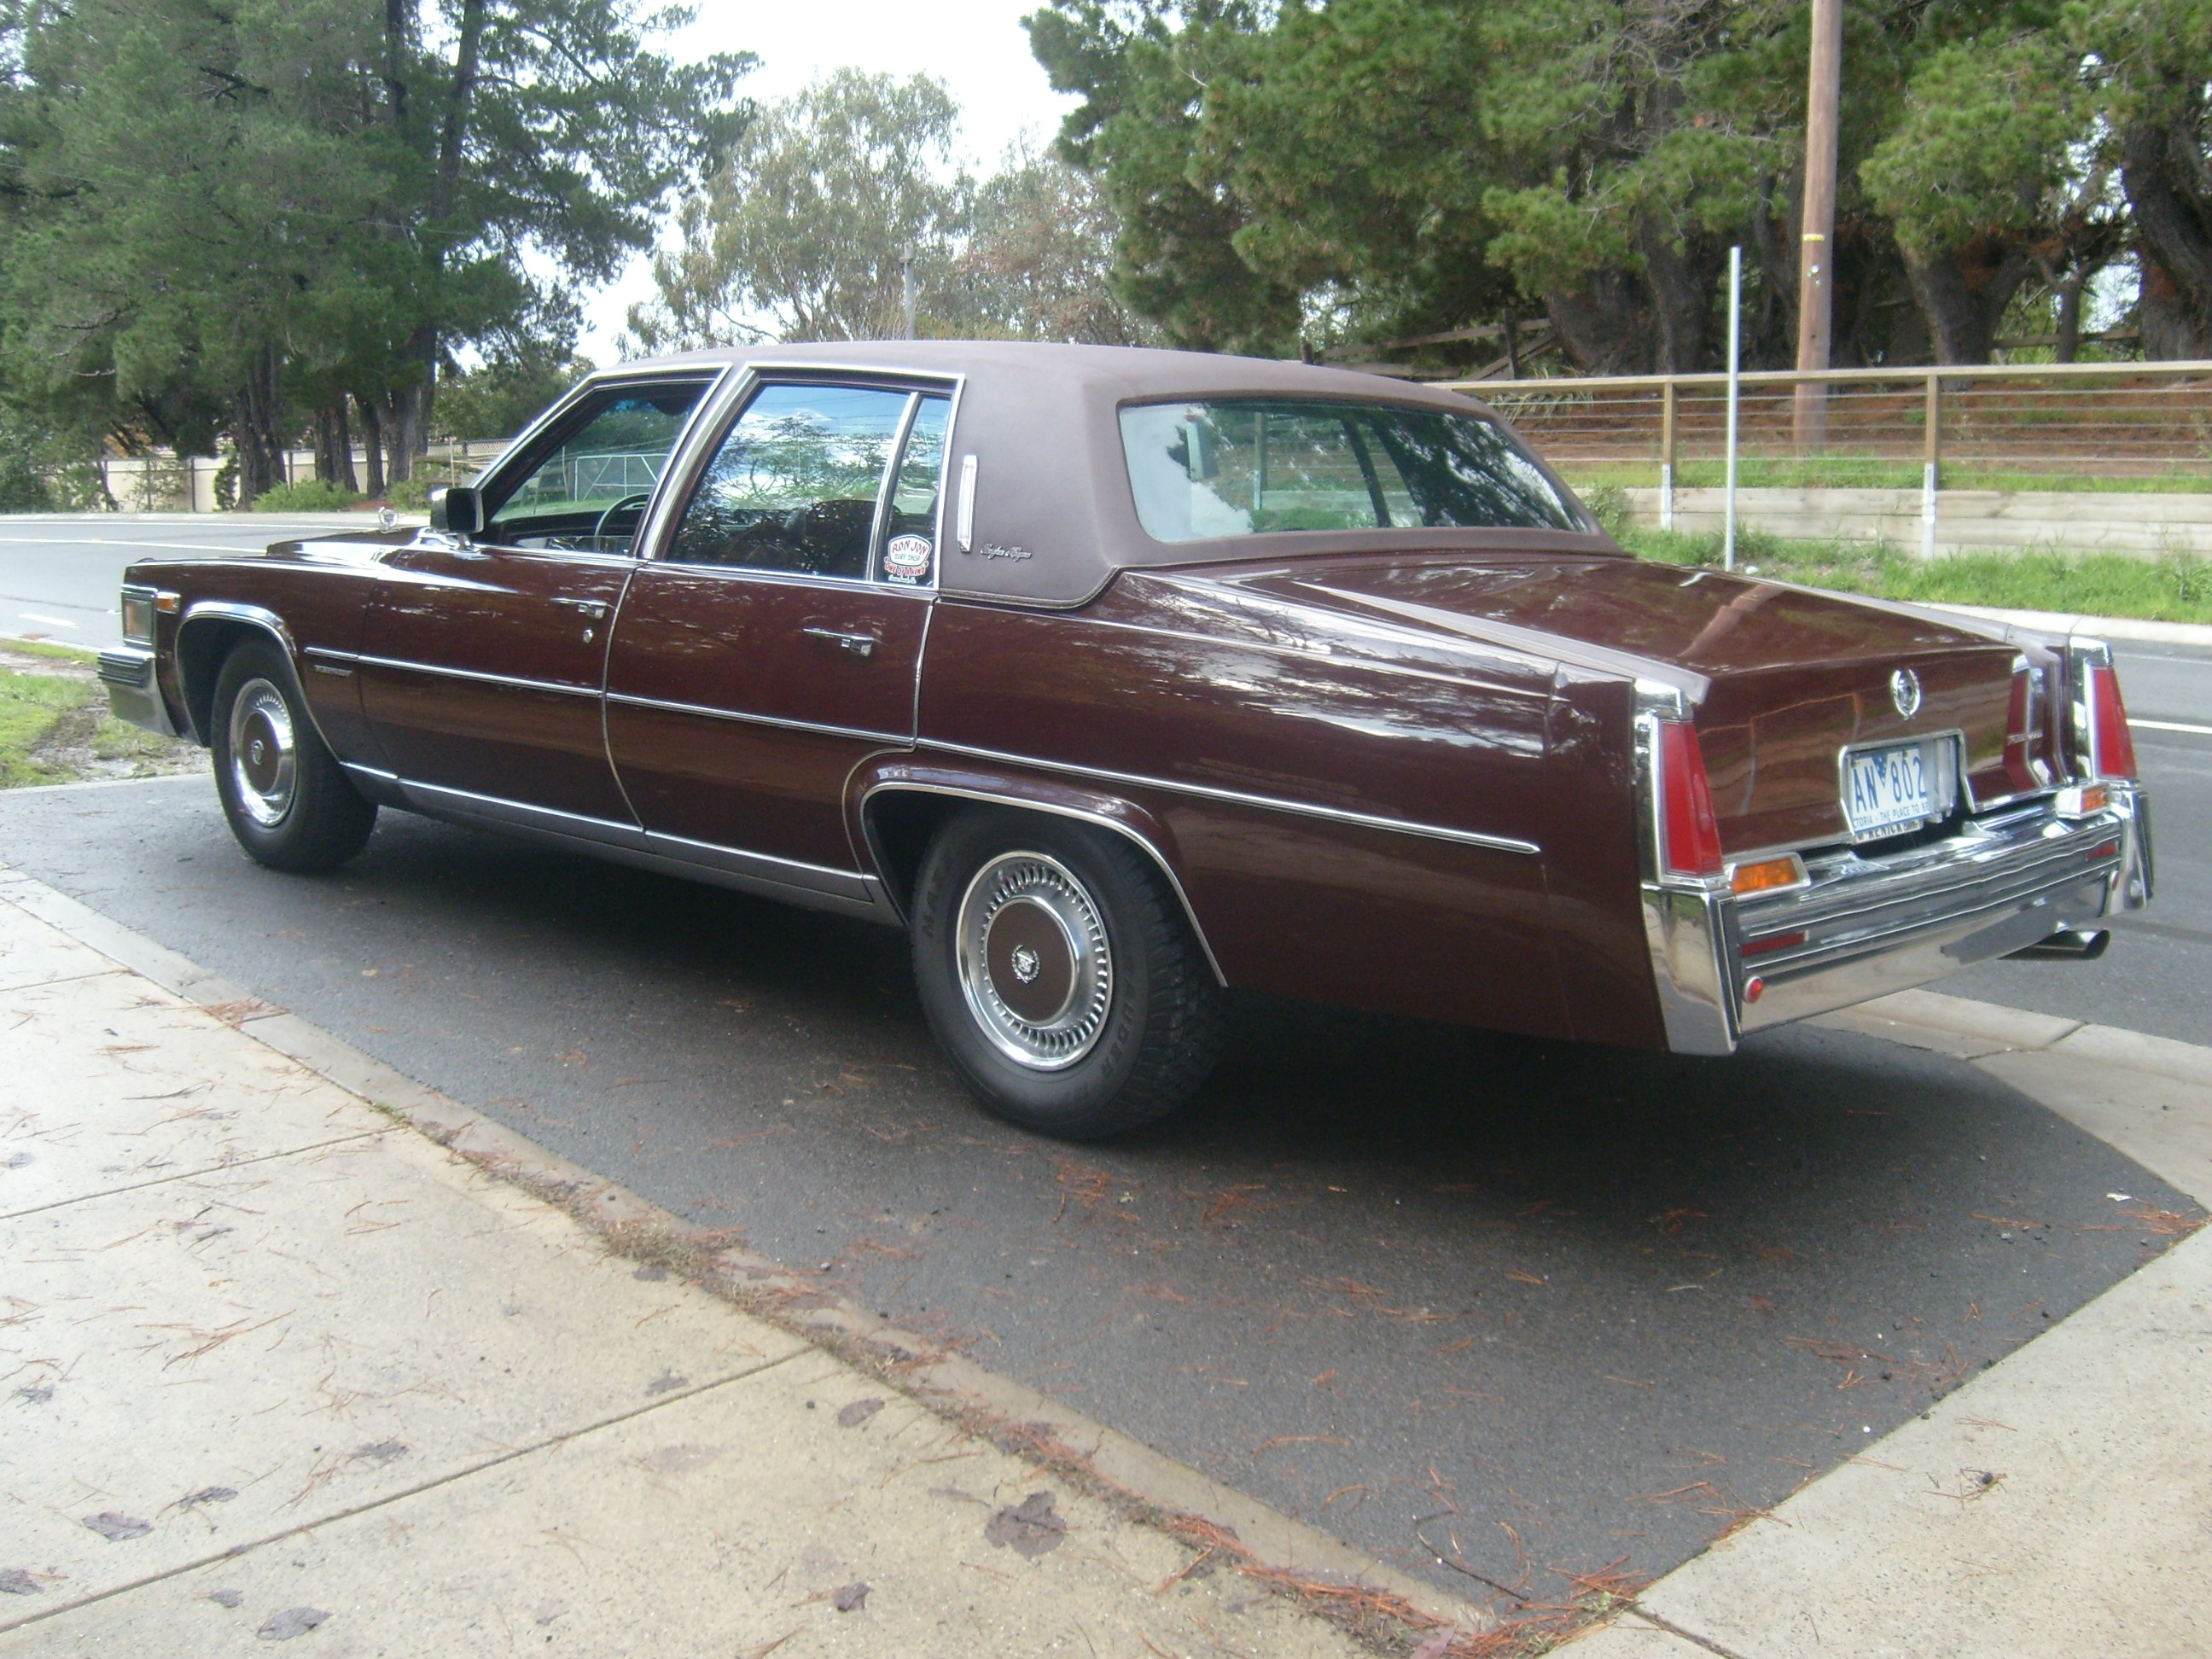 3294john0 1977 Cadillac Fleetwood Specs, Photos ...